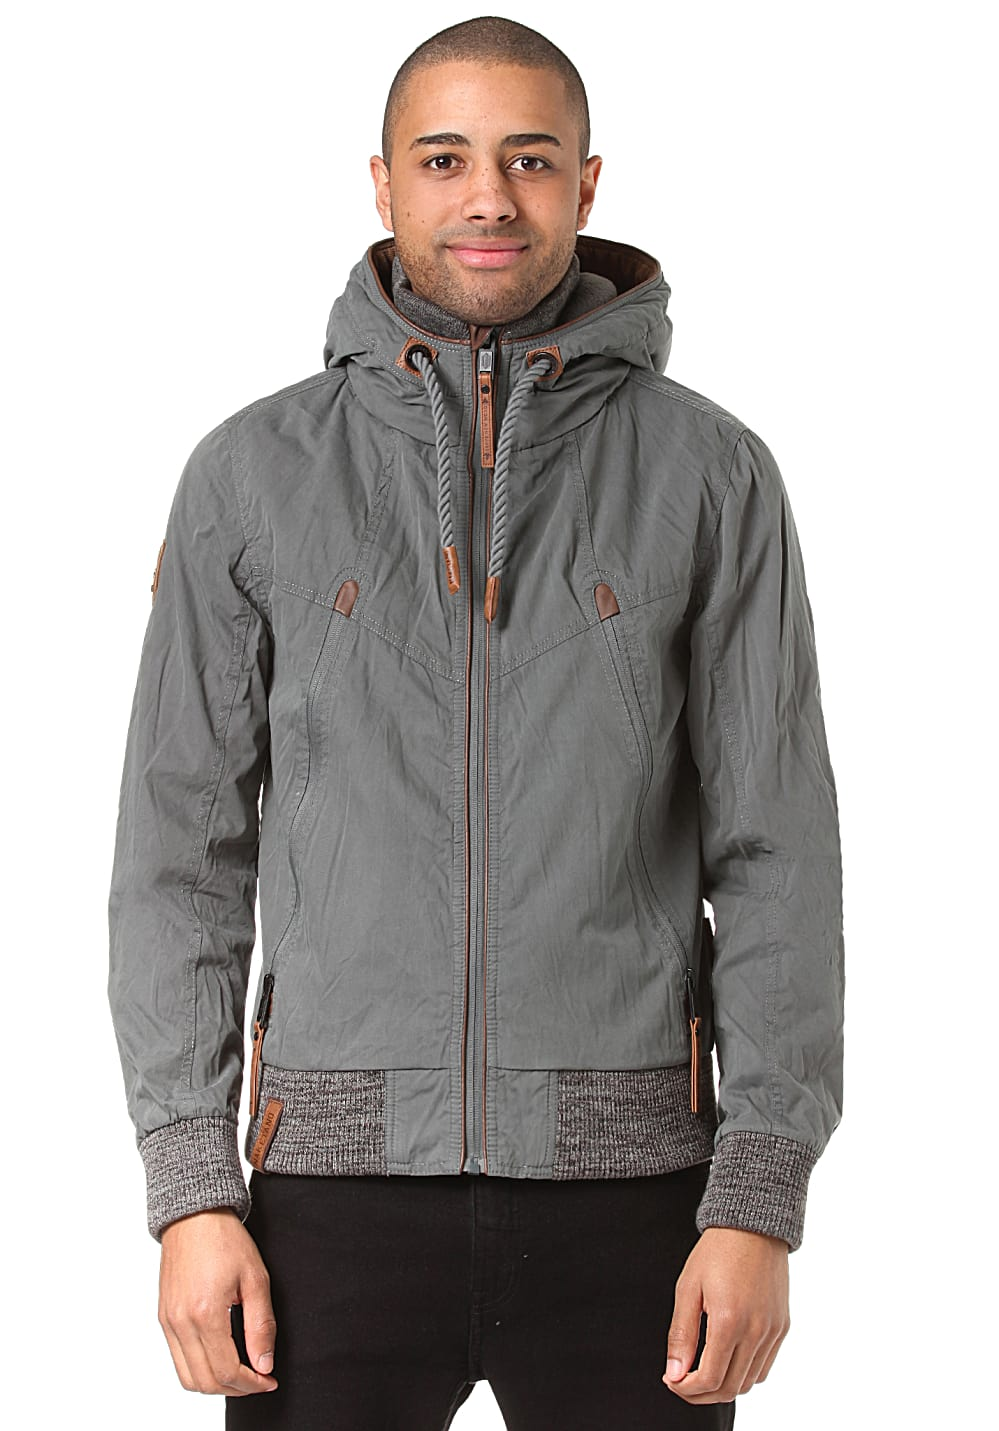 NAKETANO Old Boy Jacke für Herren Grün Planet Sports